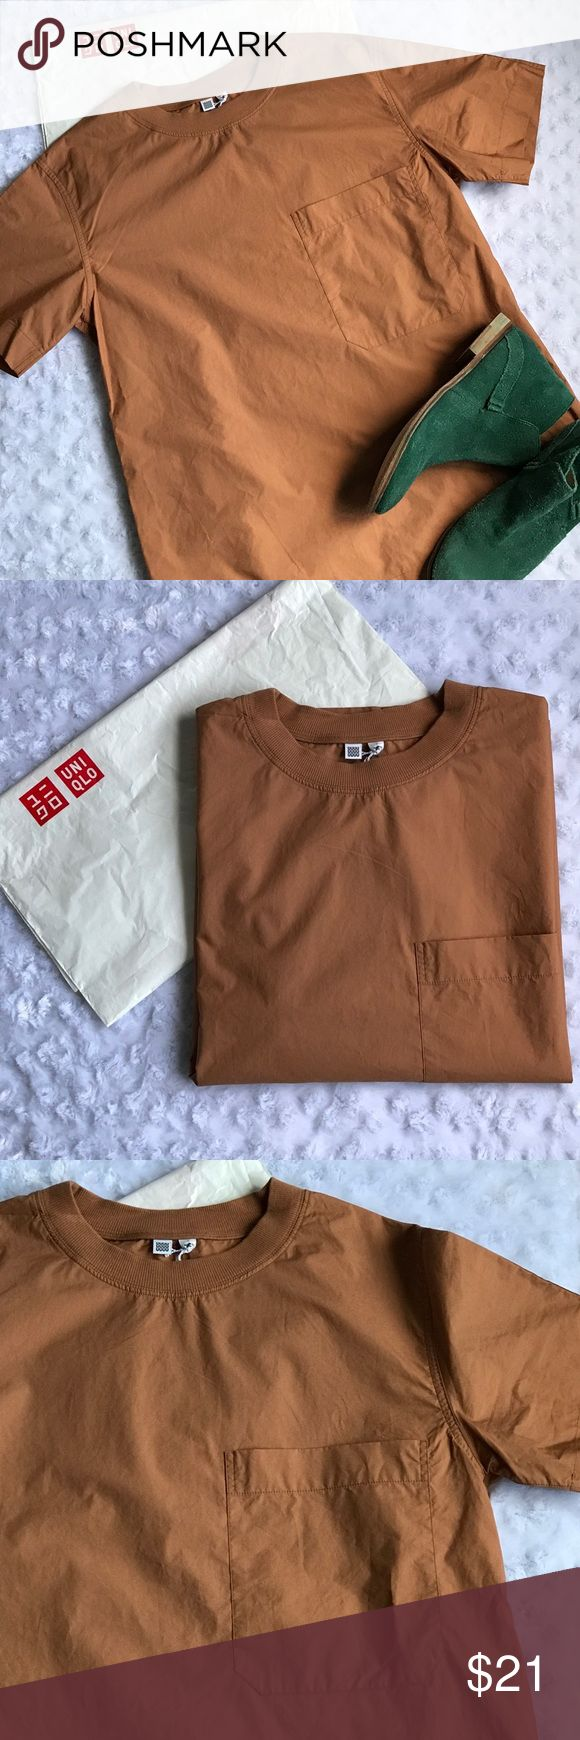 """UNIQLO BROWN SHORT SLEEVE T SHIRT Boxy style. 100% cotton. Bust 33-35"""" Length 26"""". Create your own look with ankle denim or boyfriend denim. #cinnamon #nutmeg Uniqlo Tops Tees - Short Sleeve"""